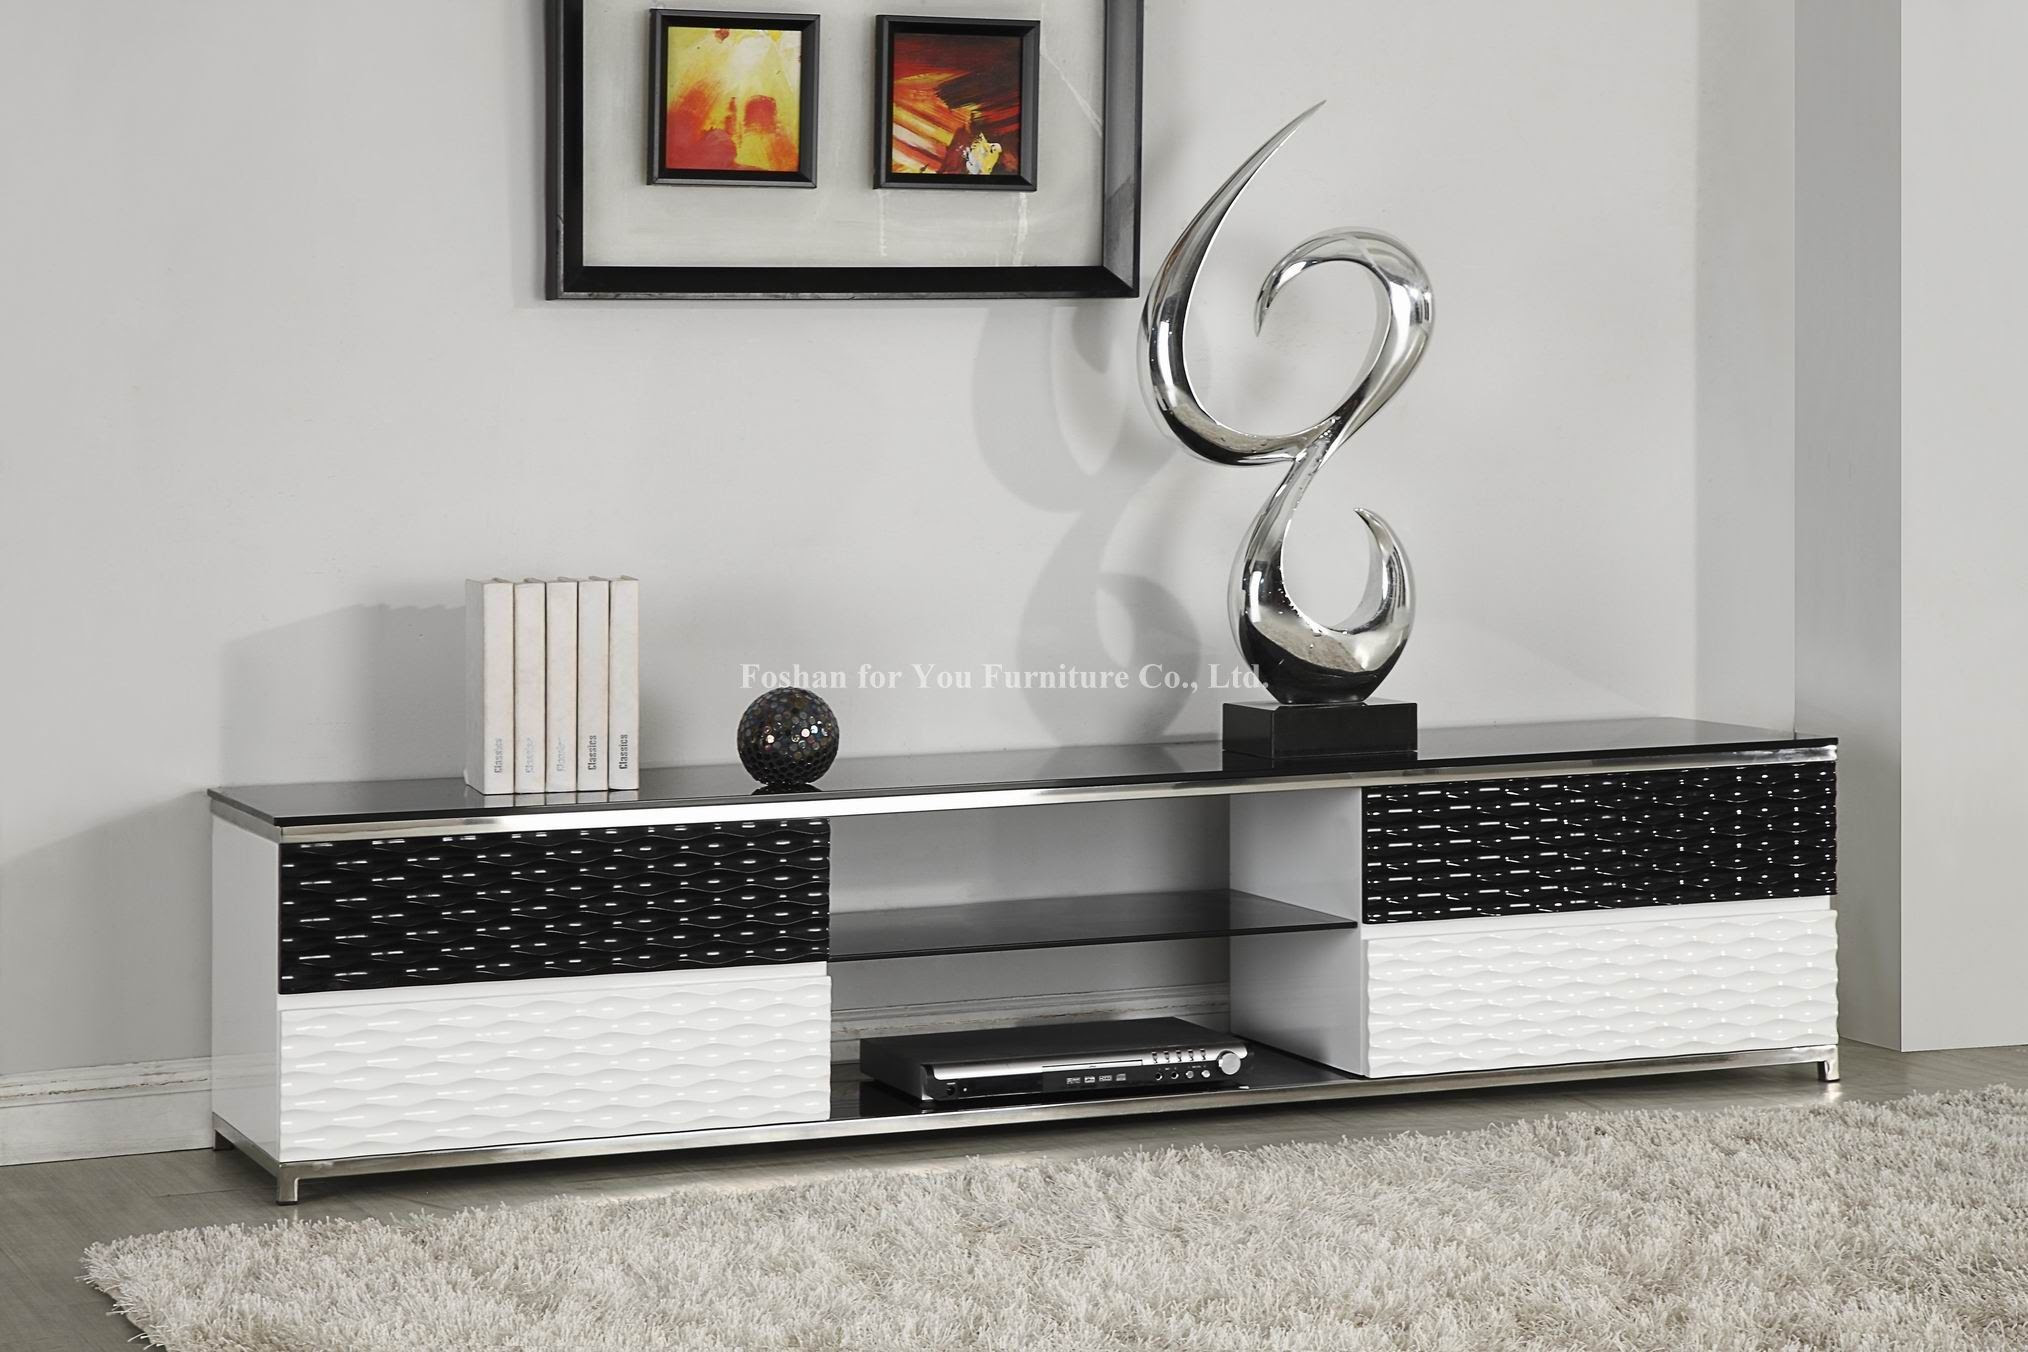 Modern Living Room Tv Stand - Zion Star